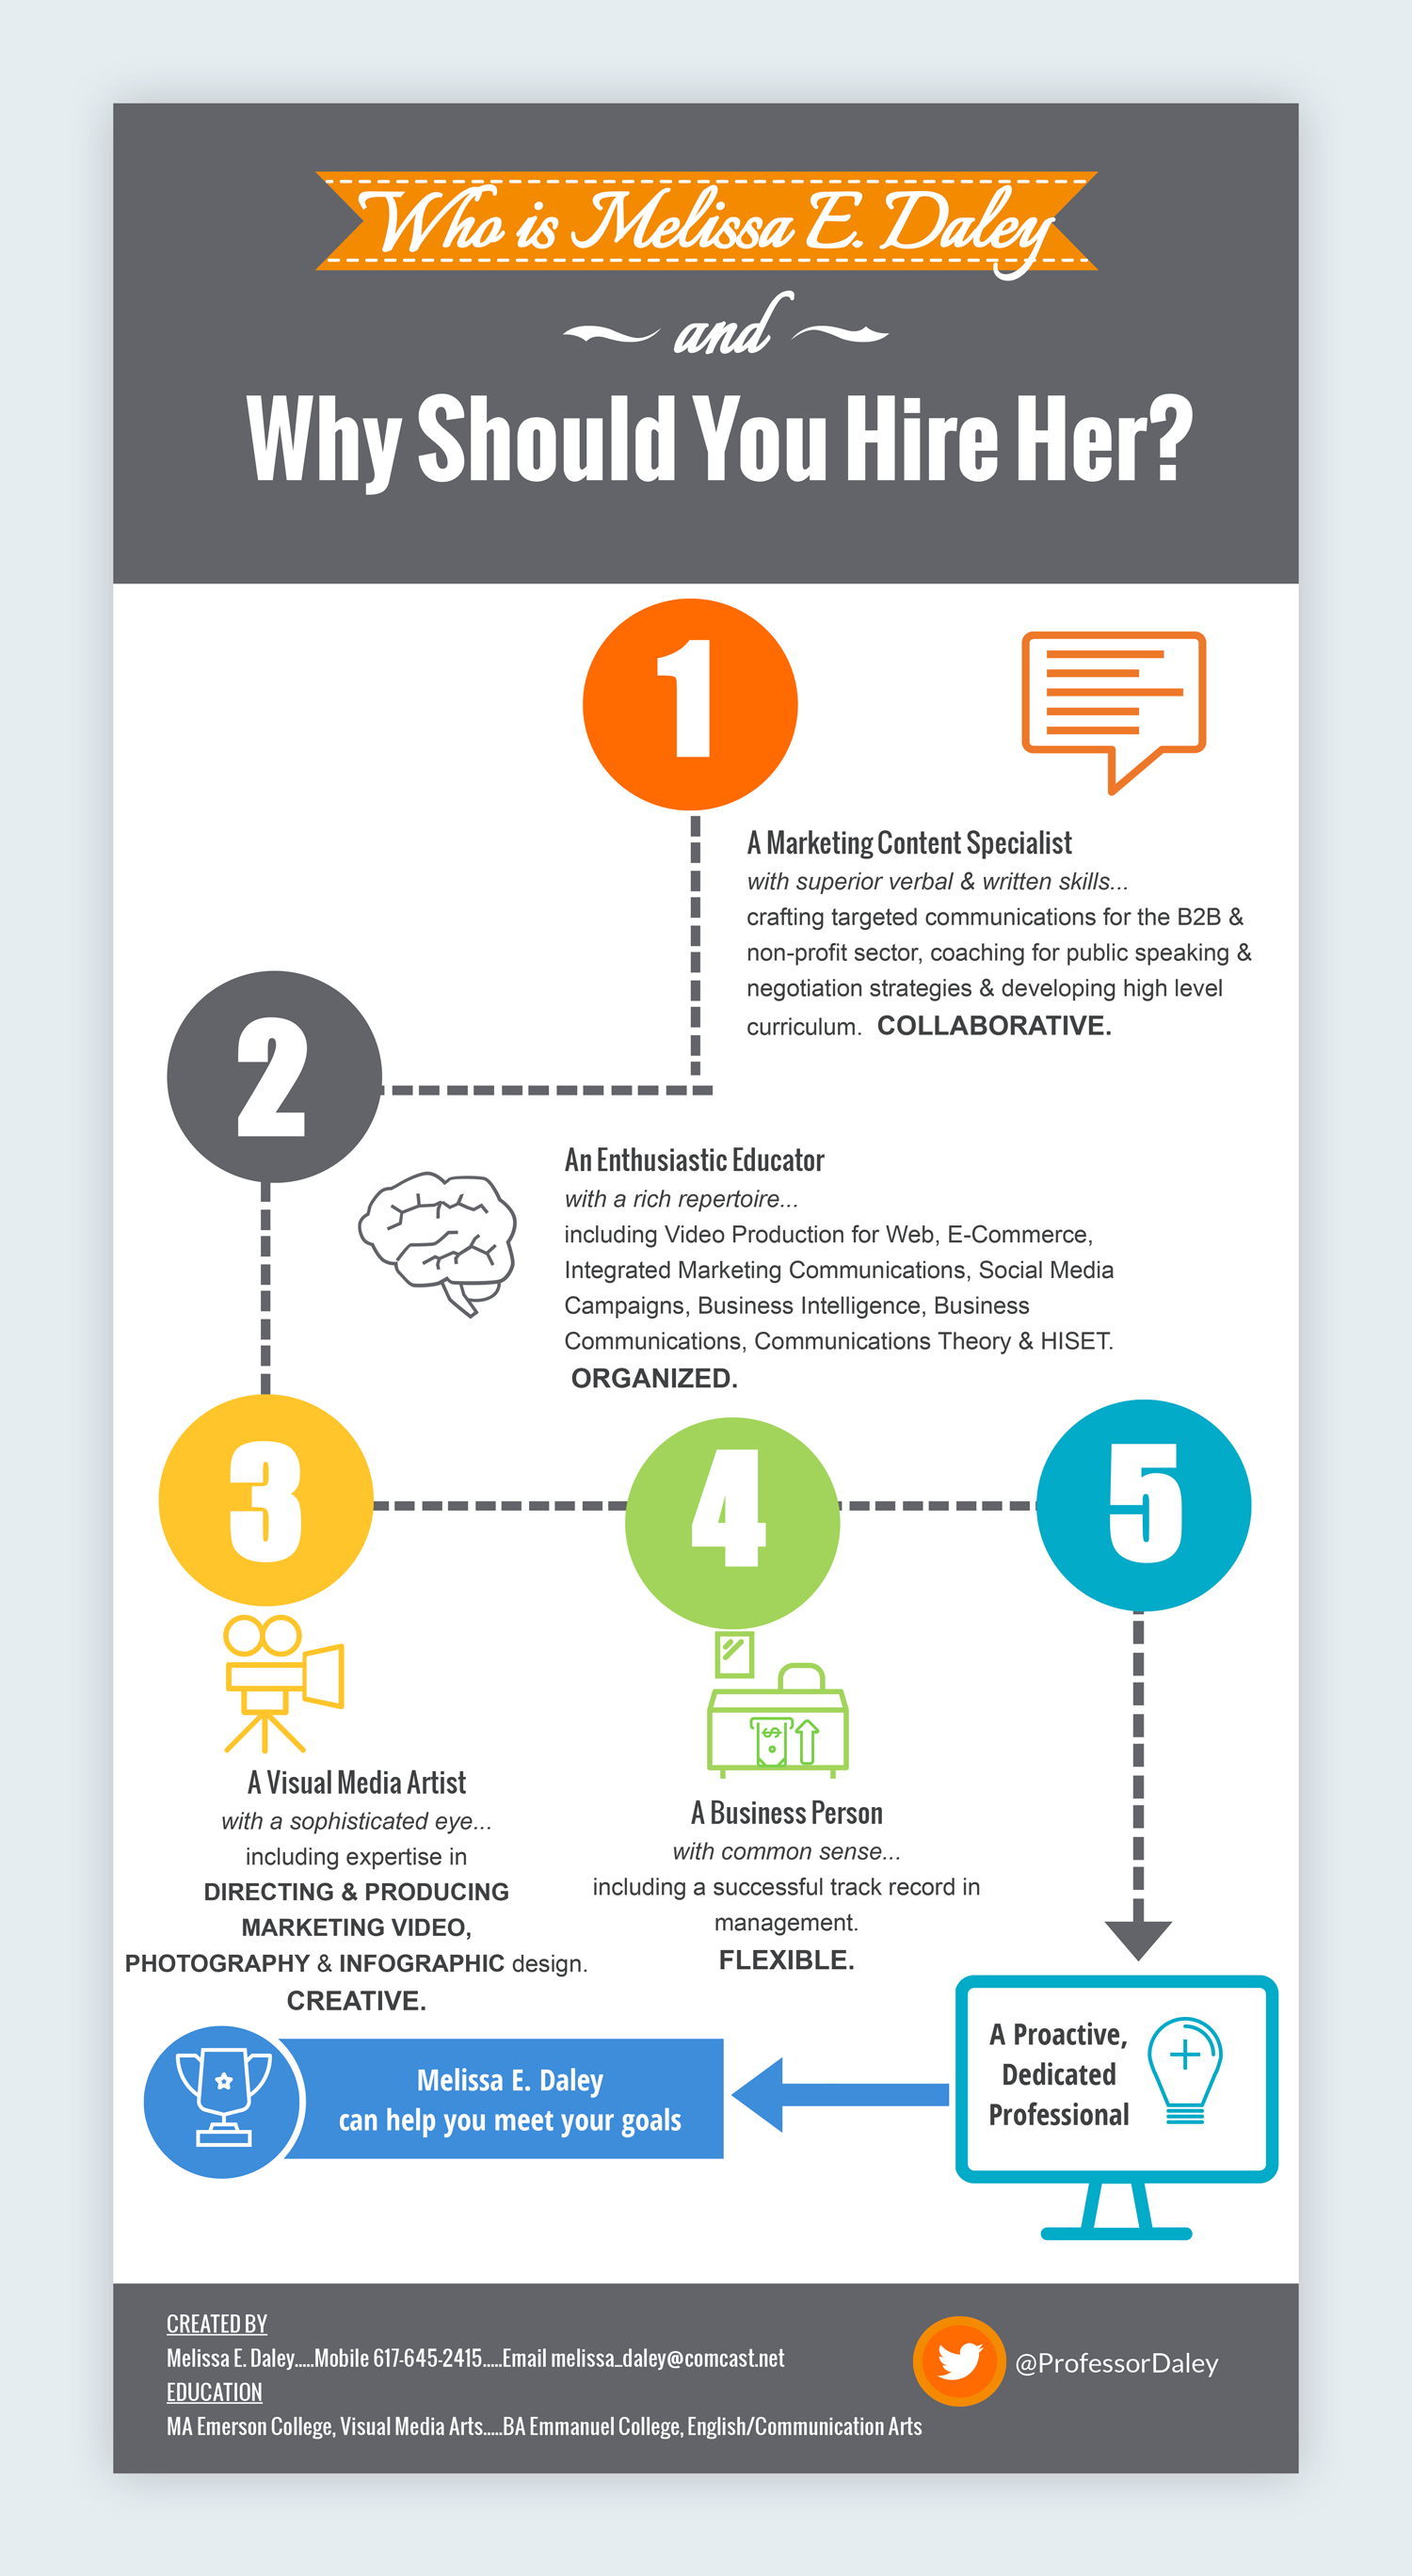 melissa daley visual cover letter